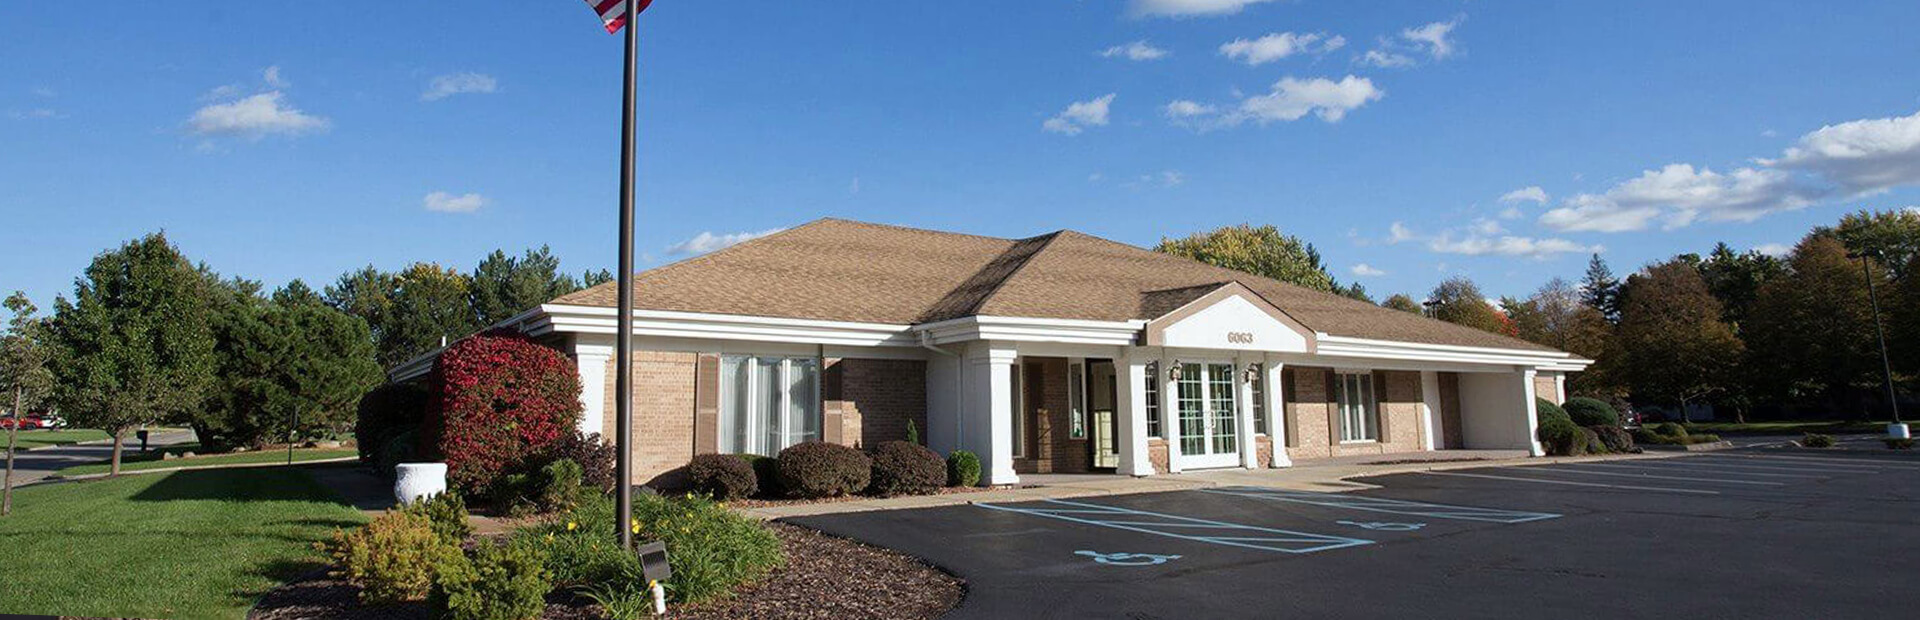 Sharp Funeral Home & Cremation Center